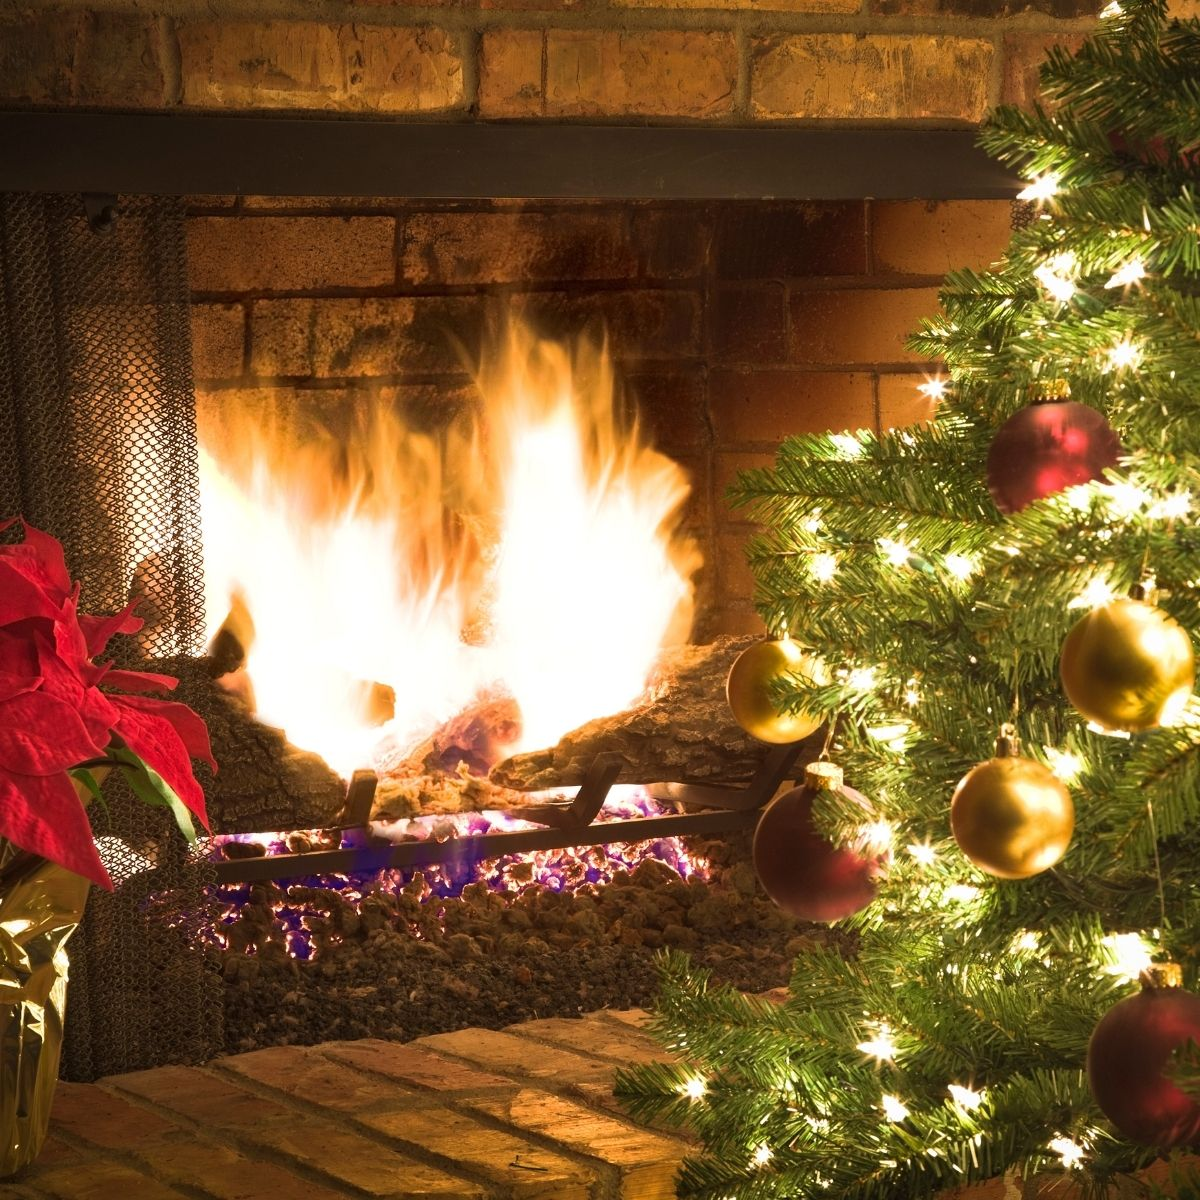 holiday fire hazards